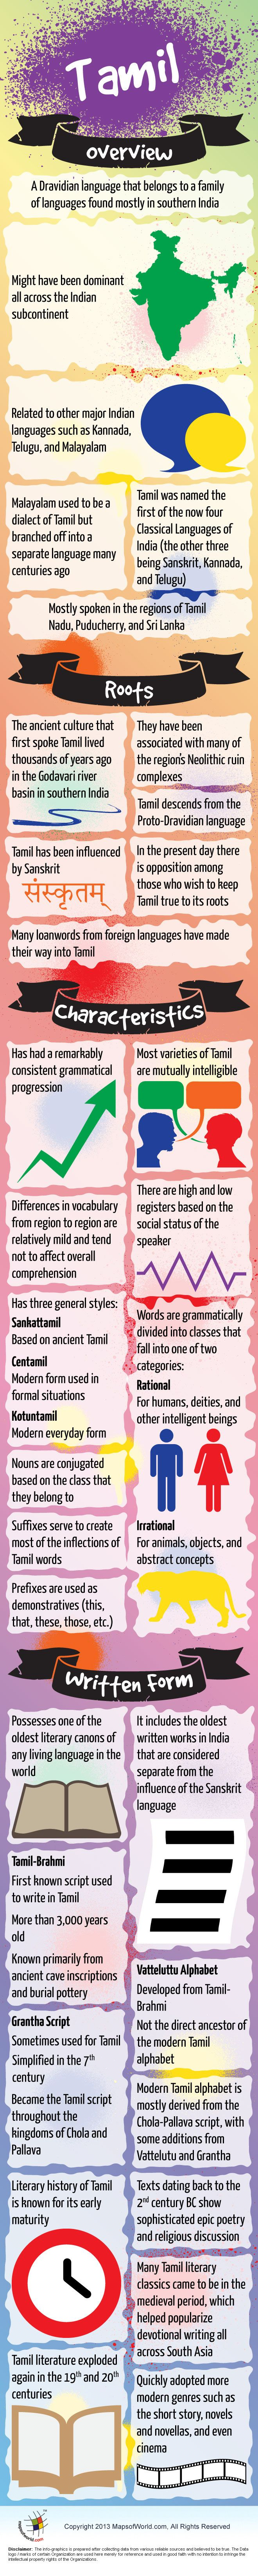 best ideas about tamil language dravidian infographic of tamil language for the ones who want to start to learn this beautiful